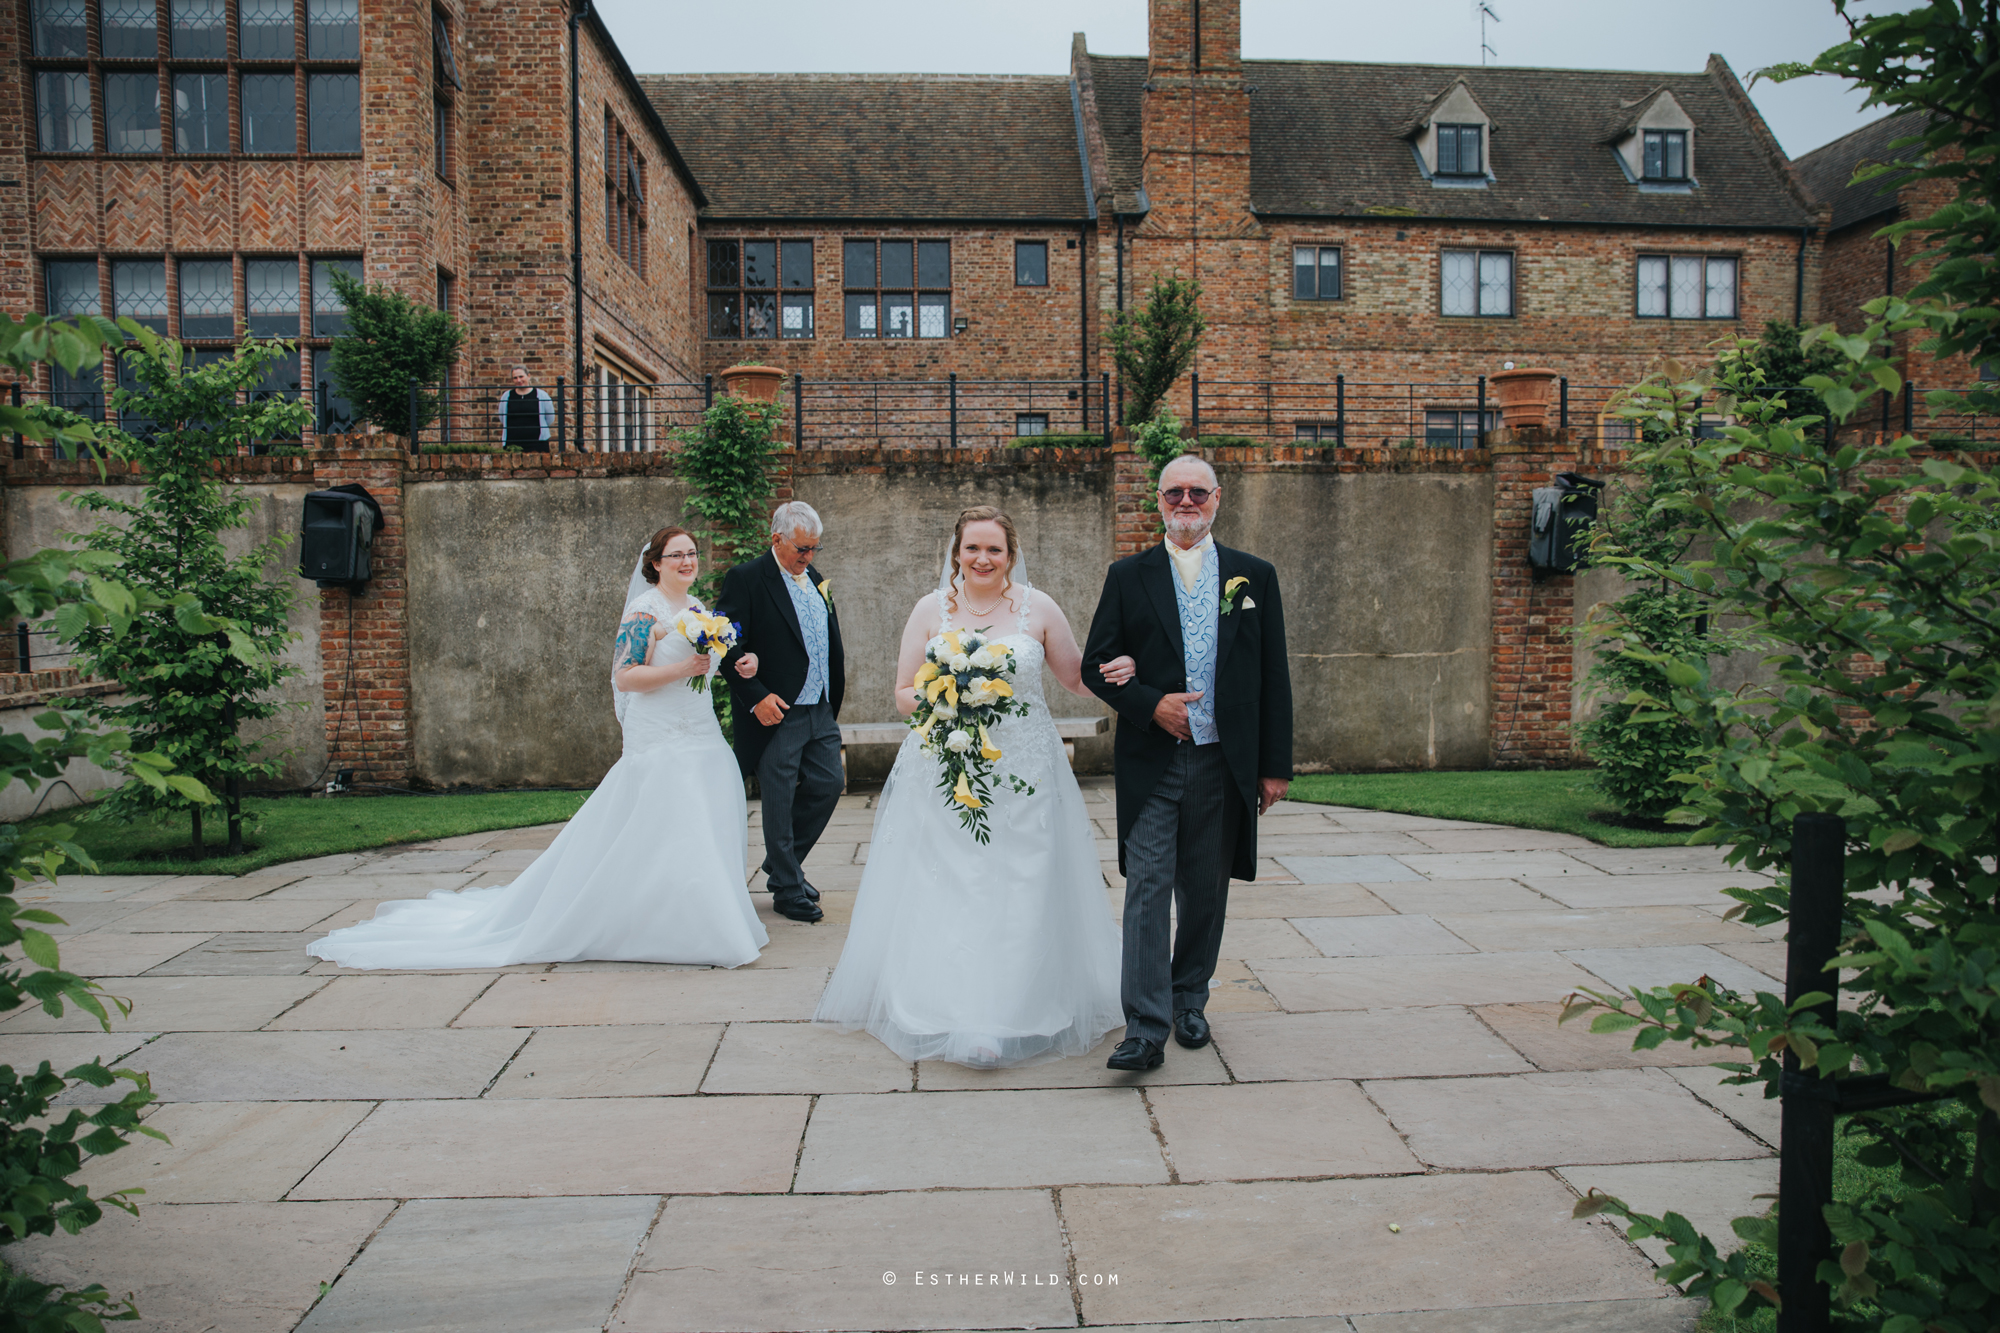 Old_Hall_Ely_Wedding_Esther_Wild_Photographer_IMG_0855.jpg